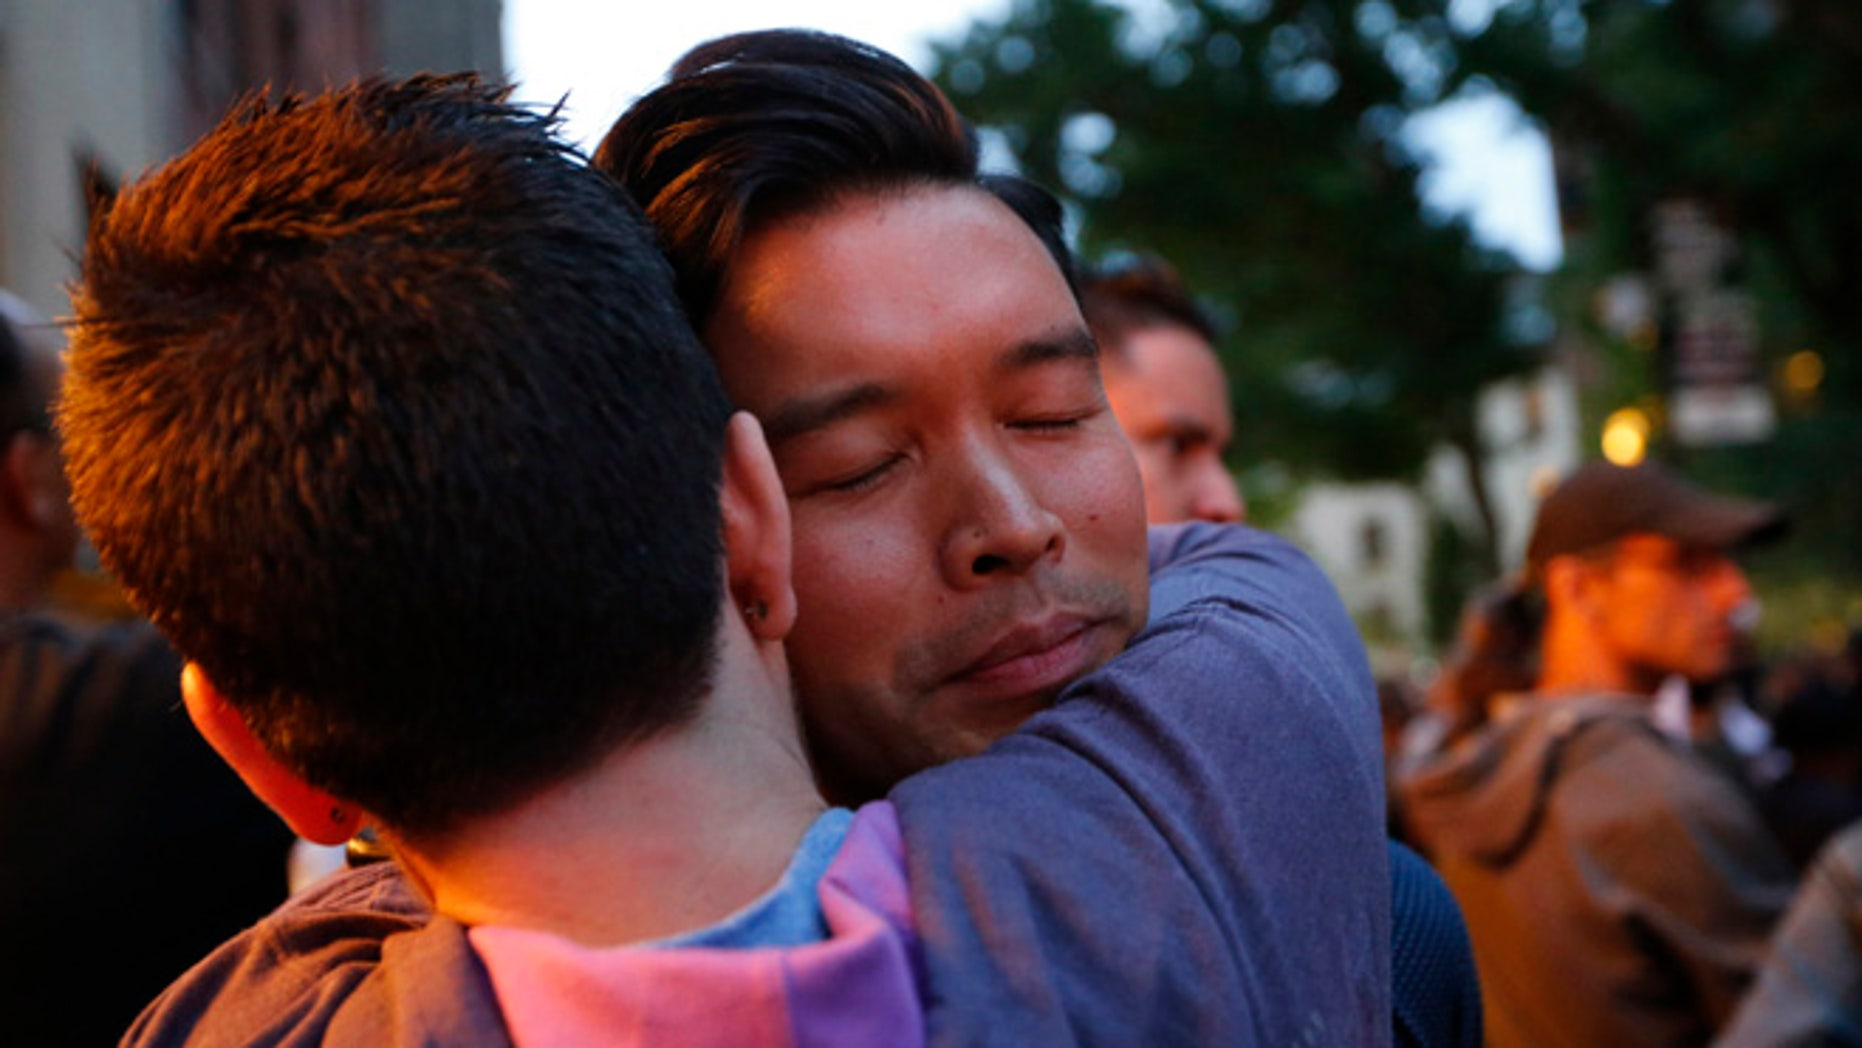 A vigil for victims of the Orlando nightclub shootings at the Stonewall Inn, a gay bar, Monday, June 13, 2016, in New York.